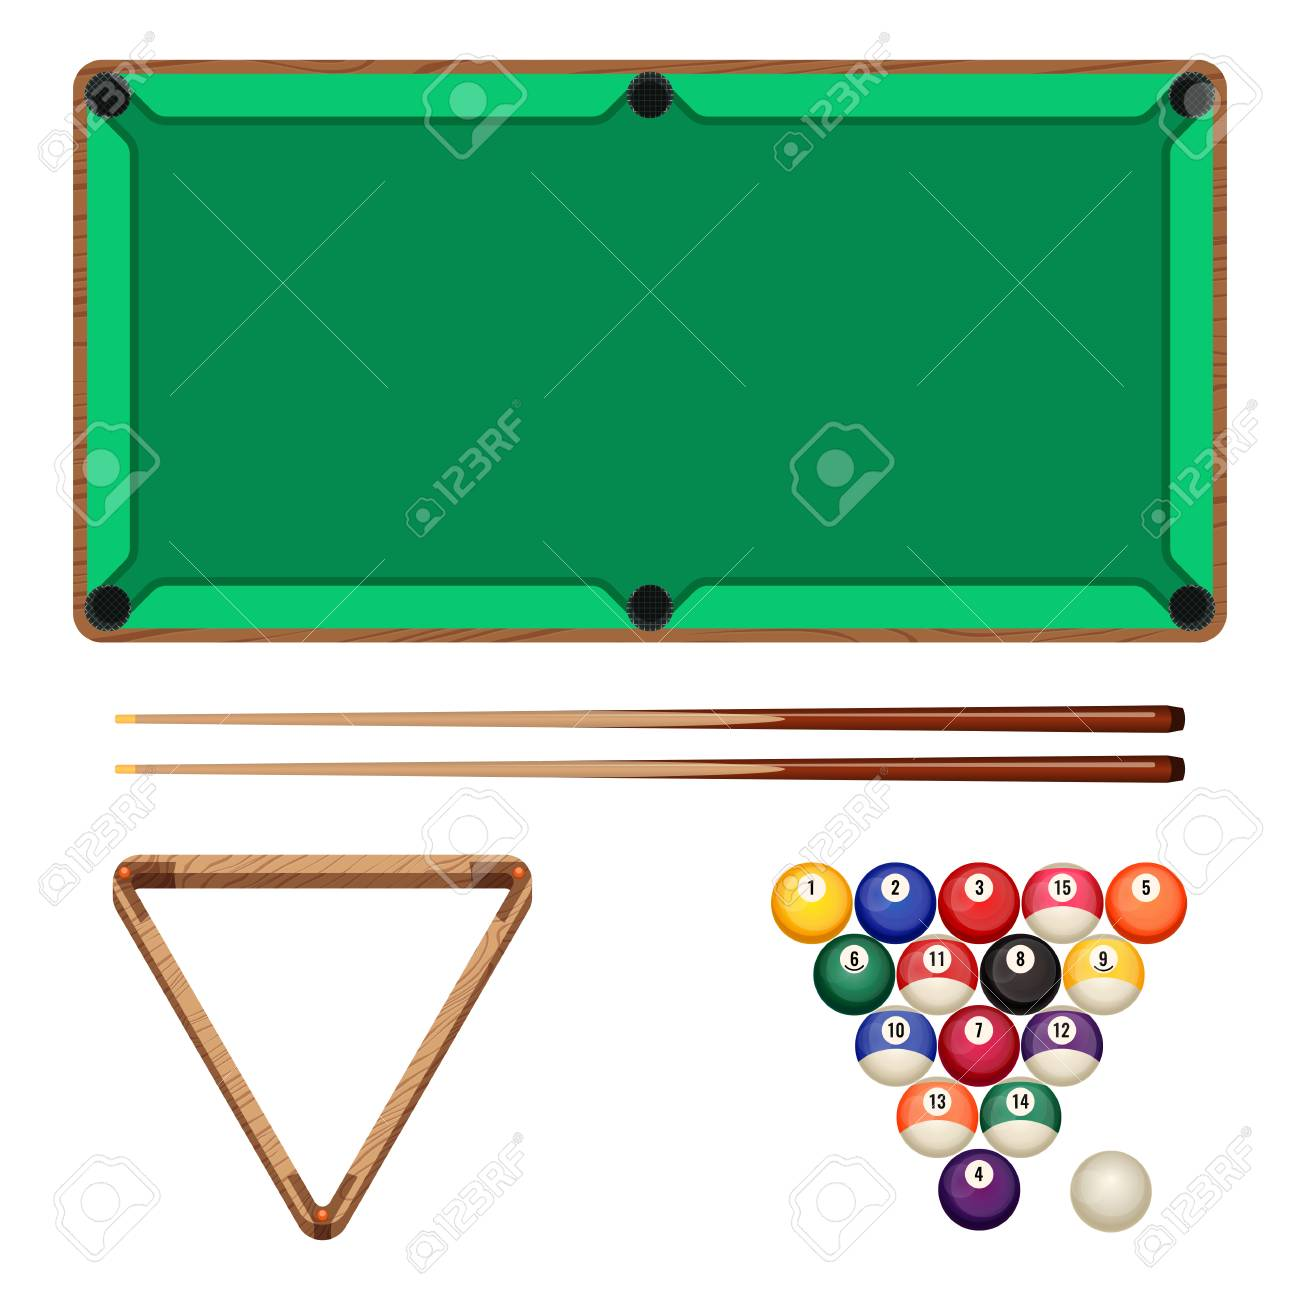 Snooker And Pool Gaming Elements Isolated On White Billiard - White billiard table